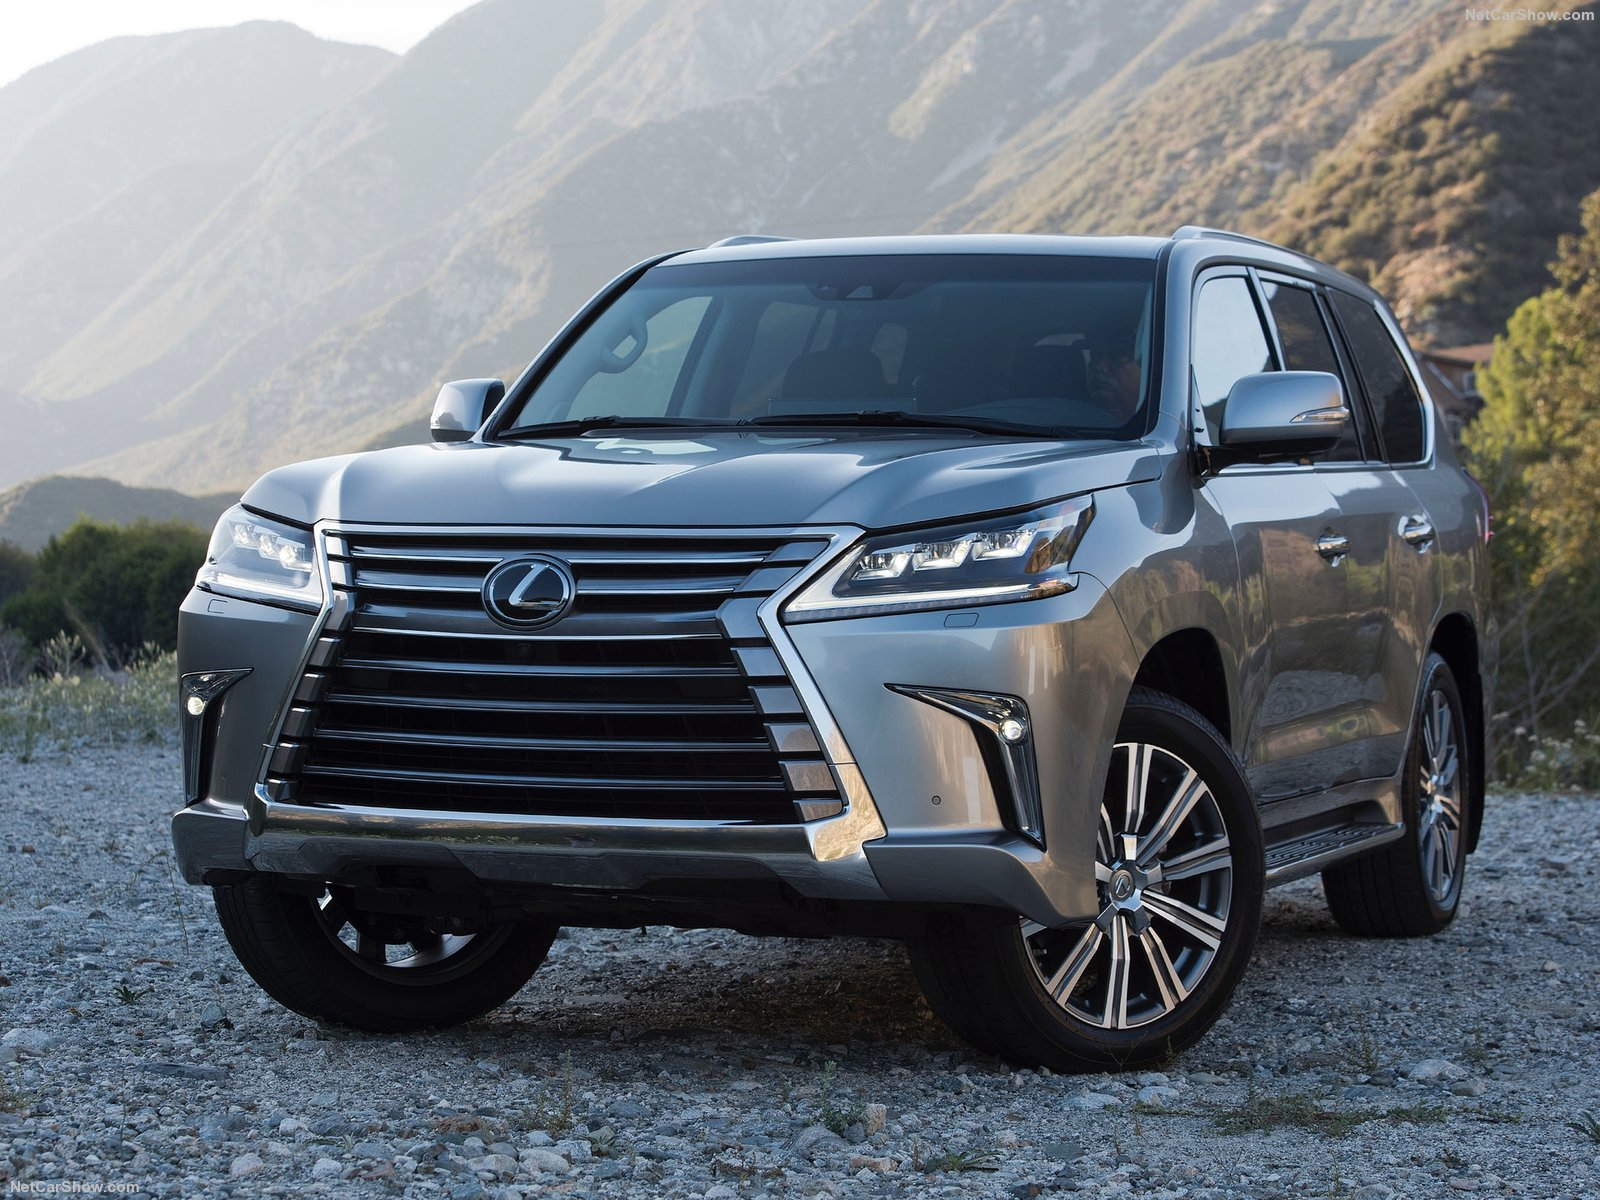 Lexus LX photo 189628